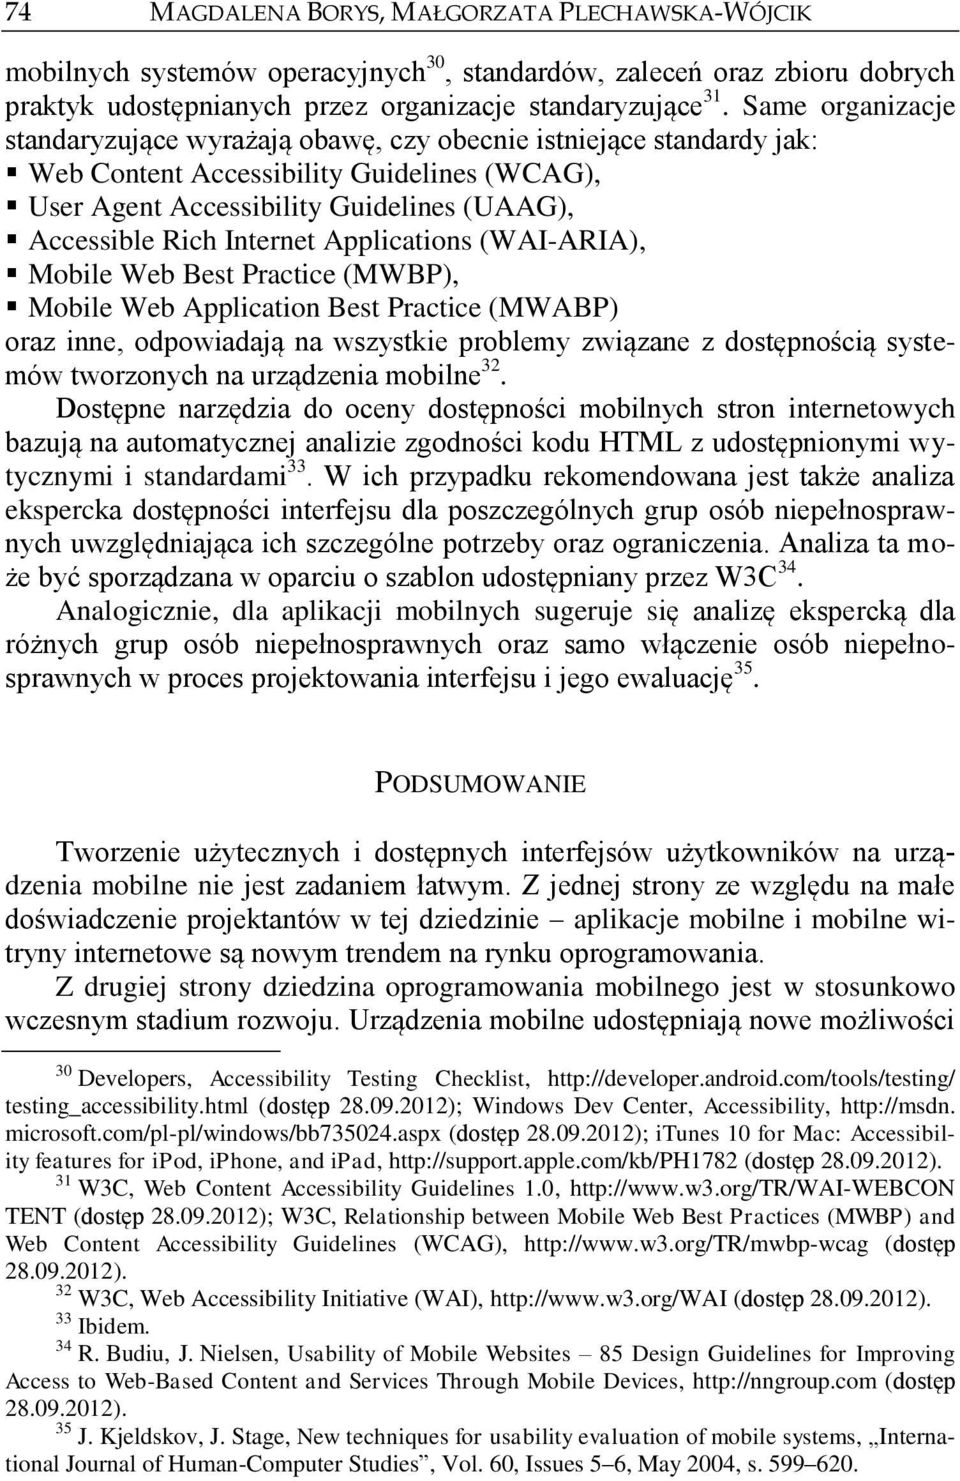 Applications (WAI-ARIA), Mobile Web Best Practice (MWBP), Mobile Web Application Best Practice (MWABP) oraz inne, odpowiadają na wszystkie problemy związane z dostępnością systemów tworzonych na